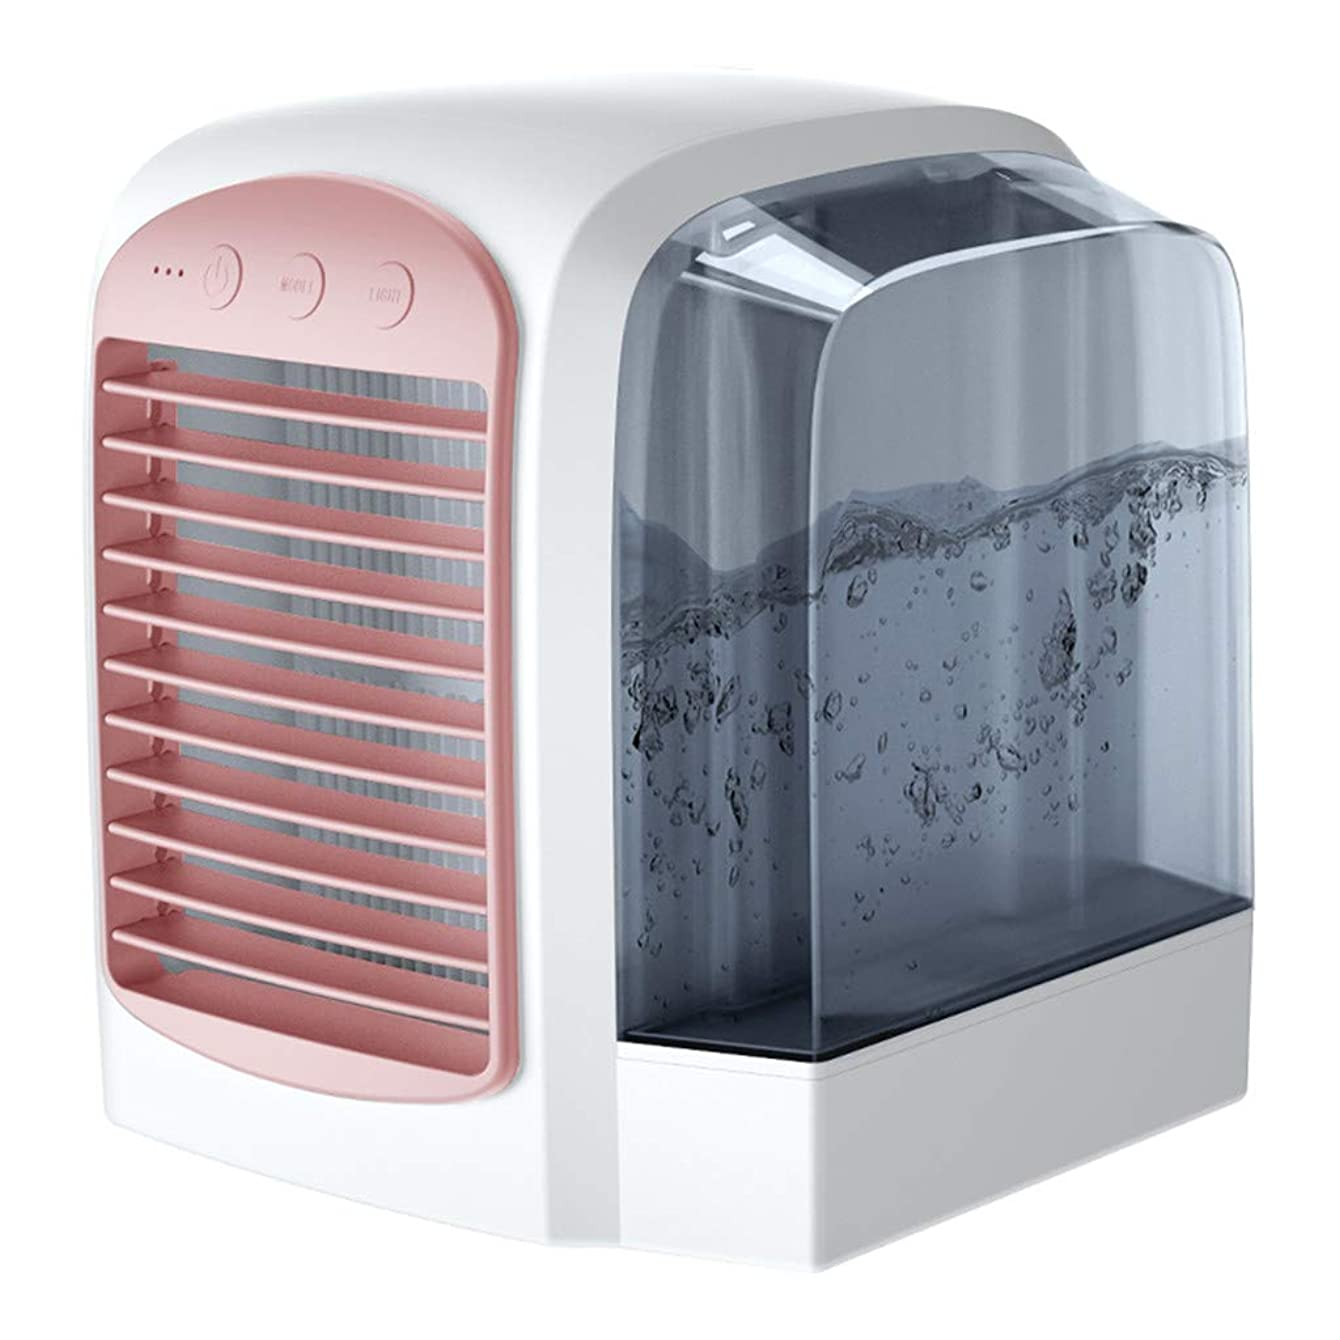 Pinleg Cooler Fan Portable Mini Air Conditioner Cool Cooling for Bedroom European Style Simple Water Air Fan Silent Water Cooling Fan Household Air Cooler Refrigeration Equipment Can (Pink)